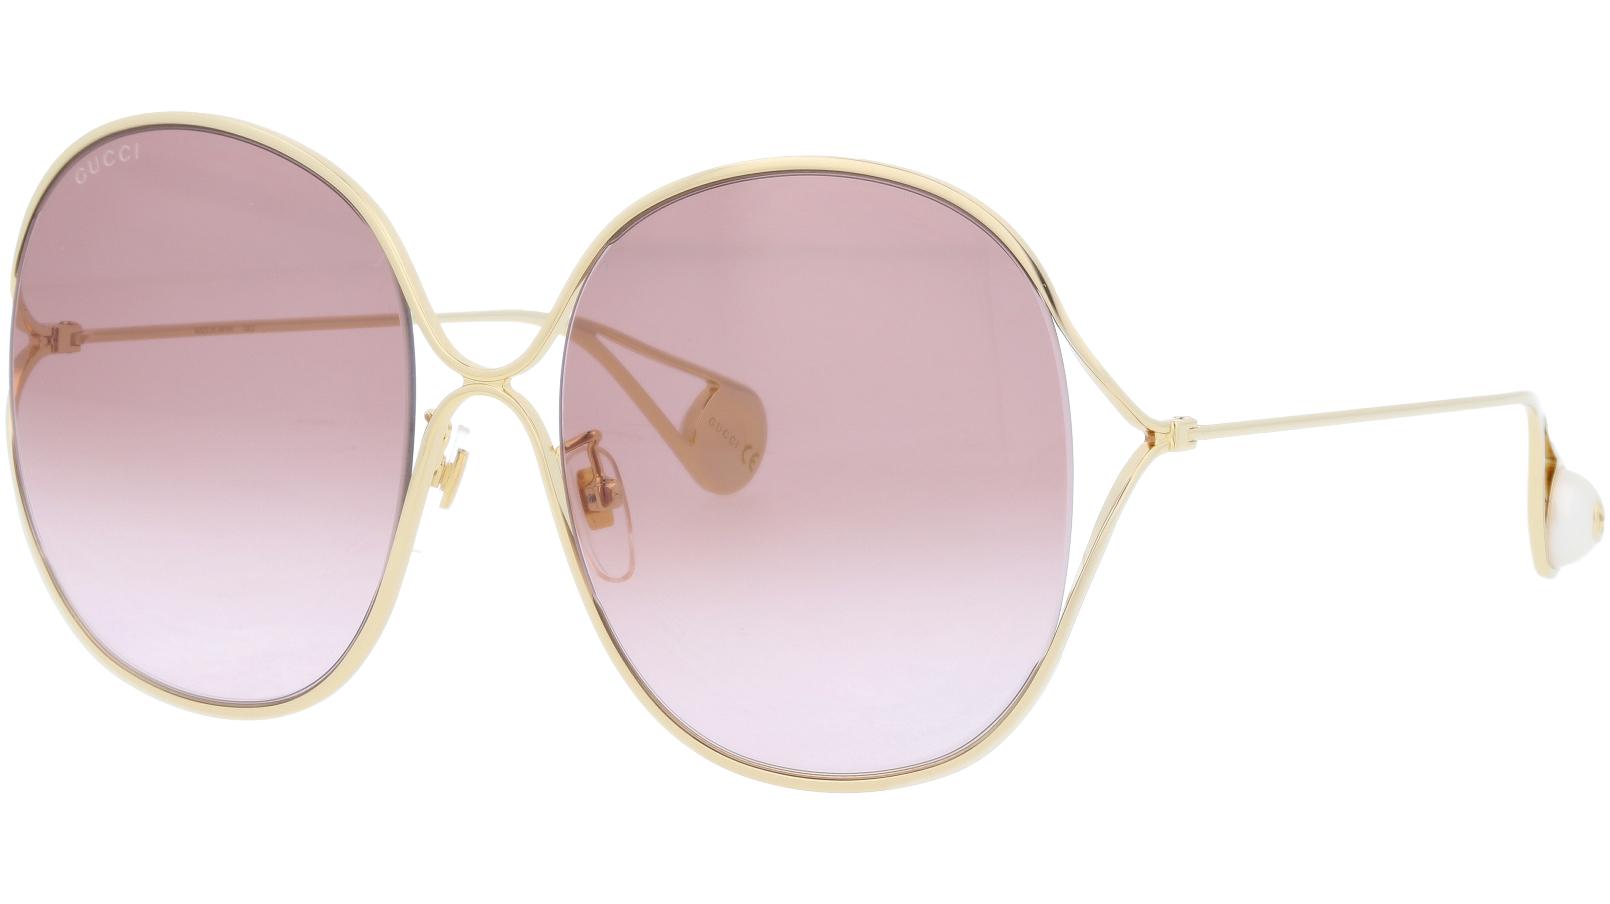 GUCCI GG0362S 001 57 GOLD Sunglasses